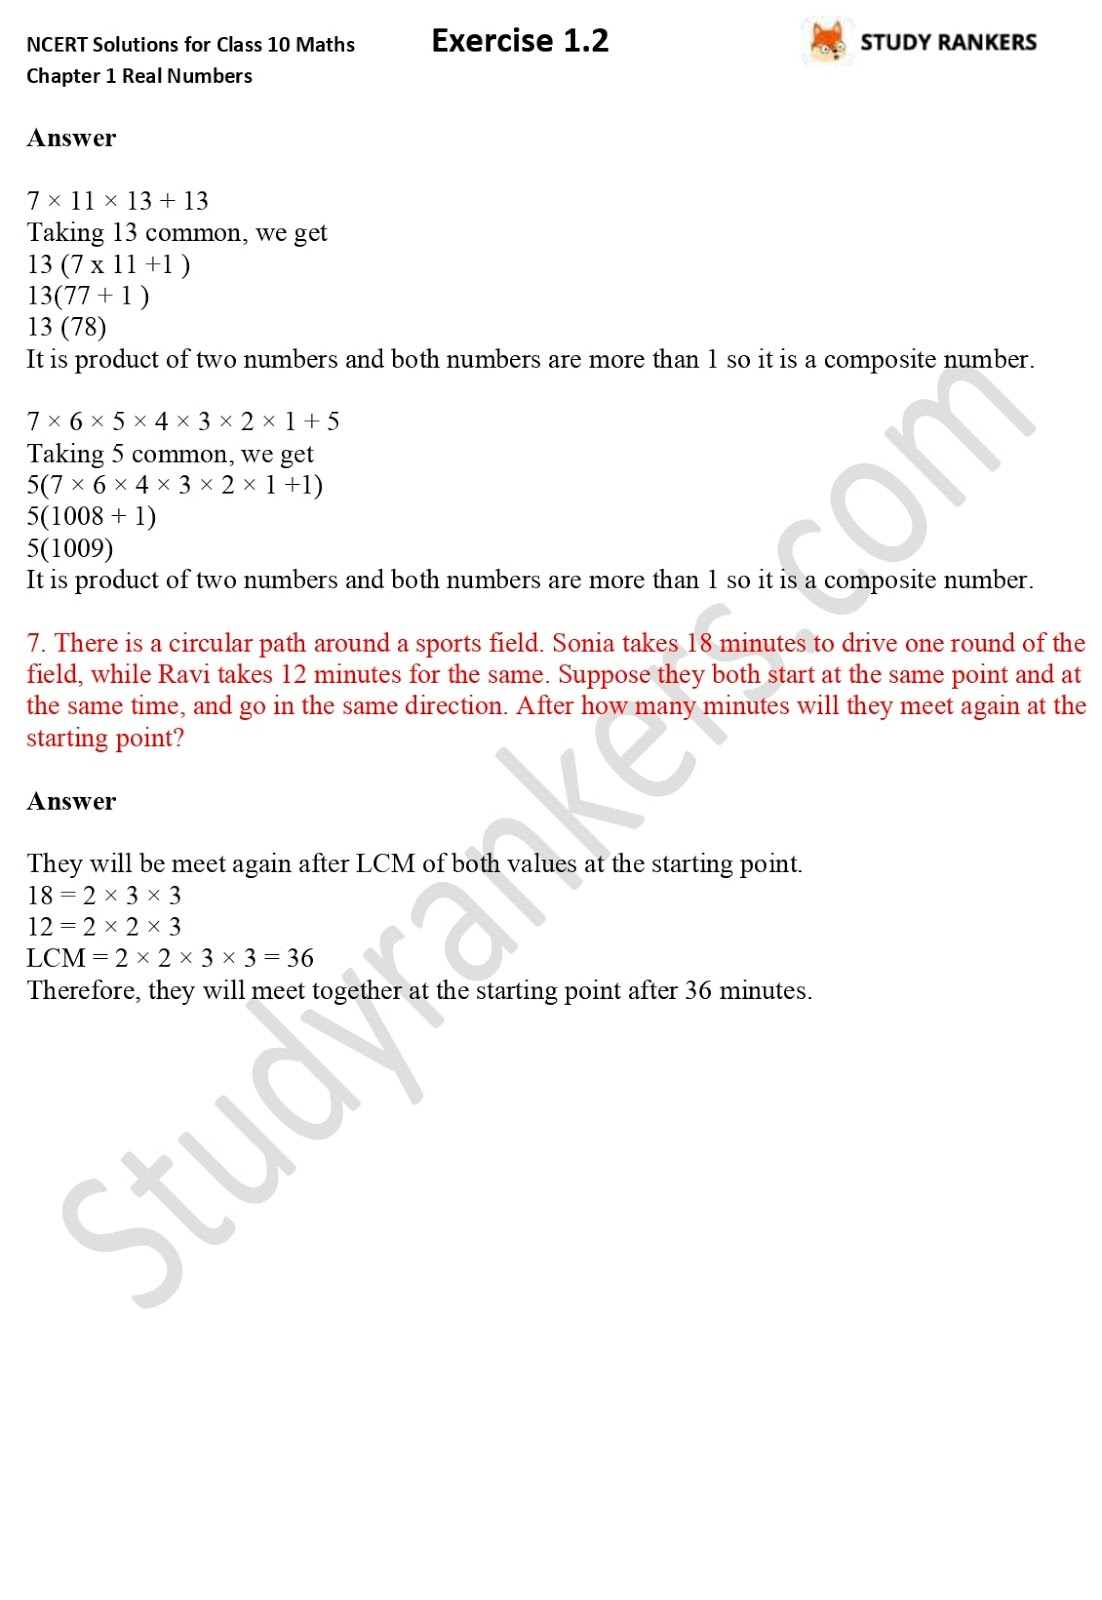 NCERT Solutions for Class 10 Maths Chapter 1 Real Numbers Exercise 1.2 3